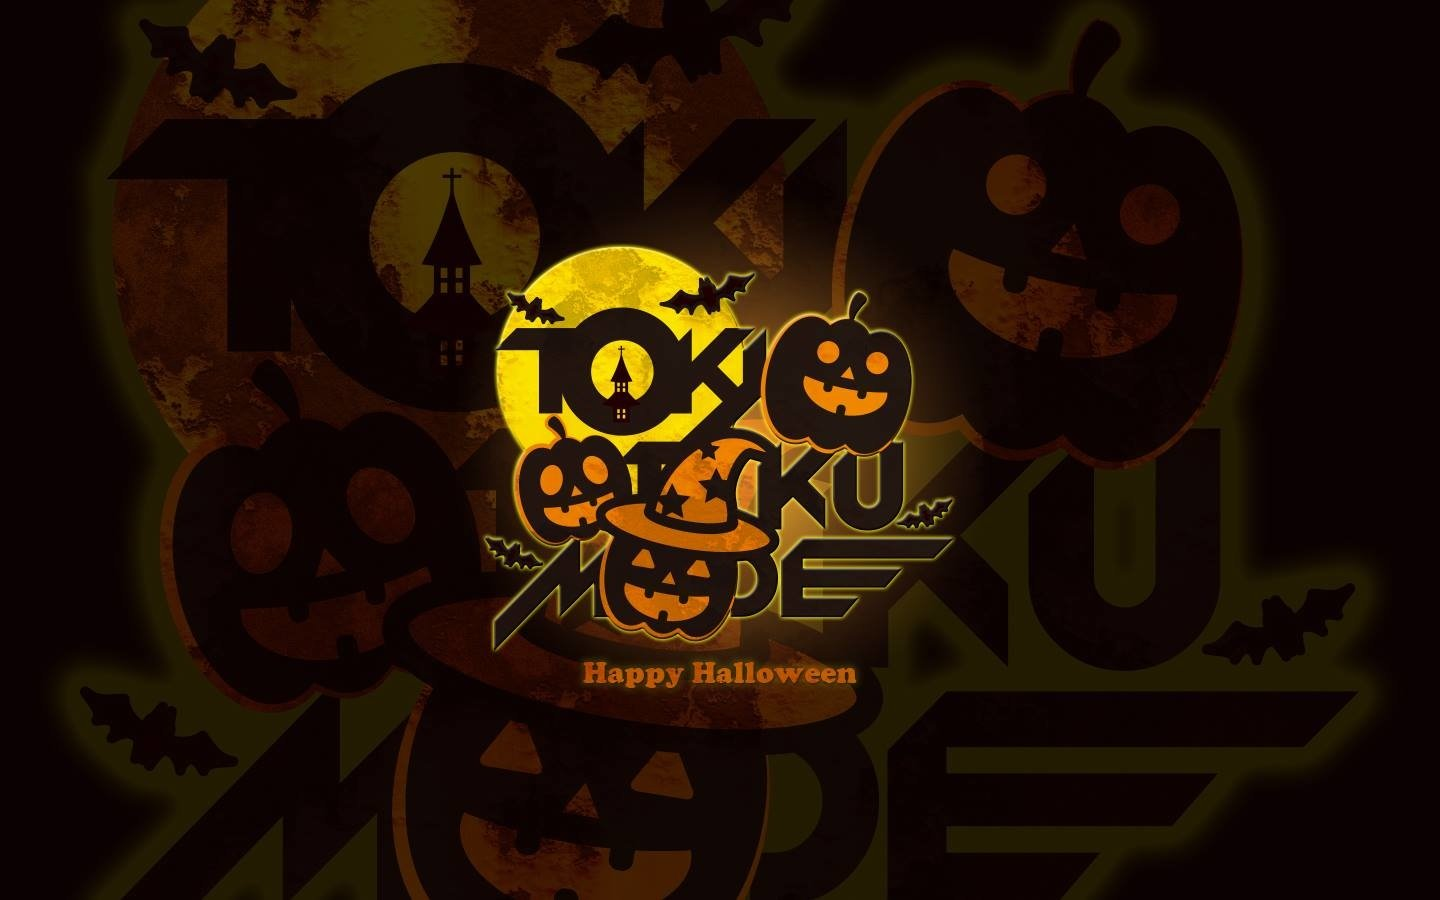 Good Wallpaper Halloween Smartphone - e804f1532a6d4e6c81cb592a6c923f31  Pictures_42736.jpg